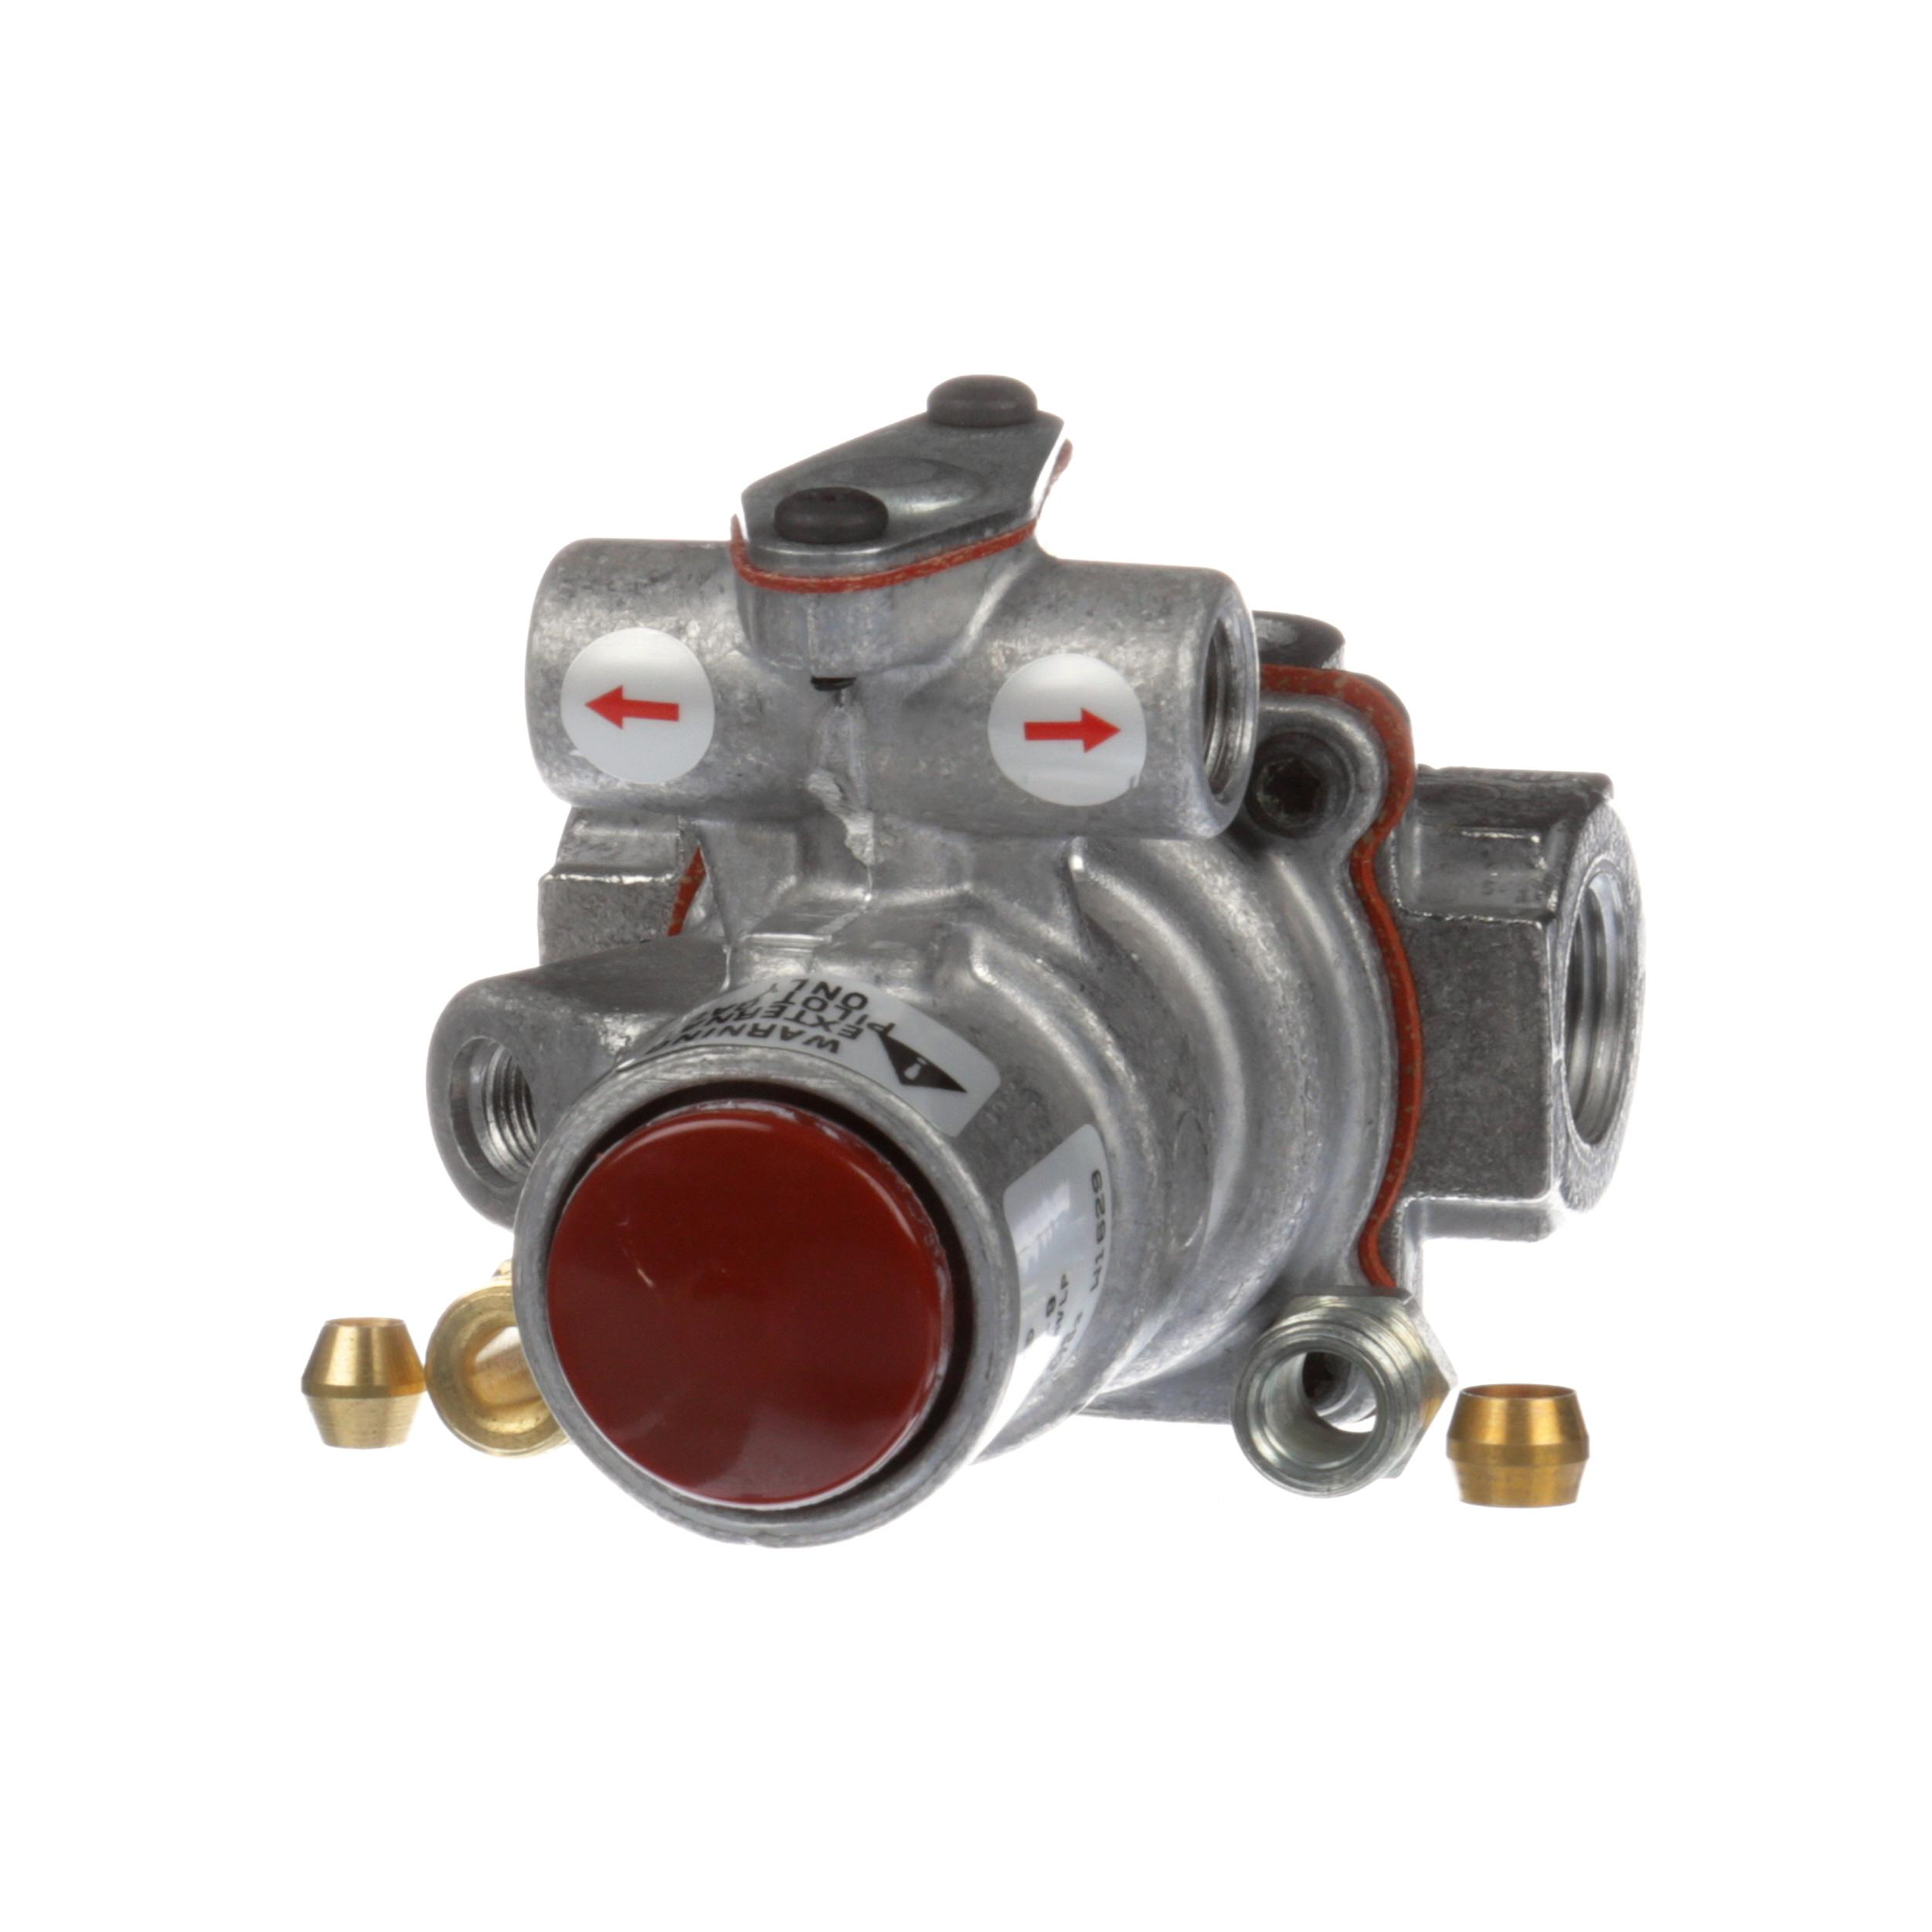 GARLAND HI-TEMP BASO VALVE KIT